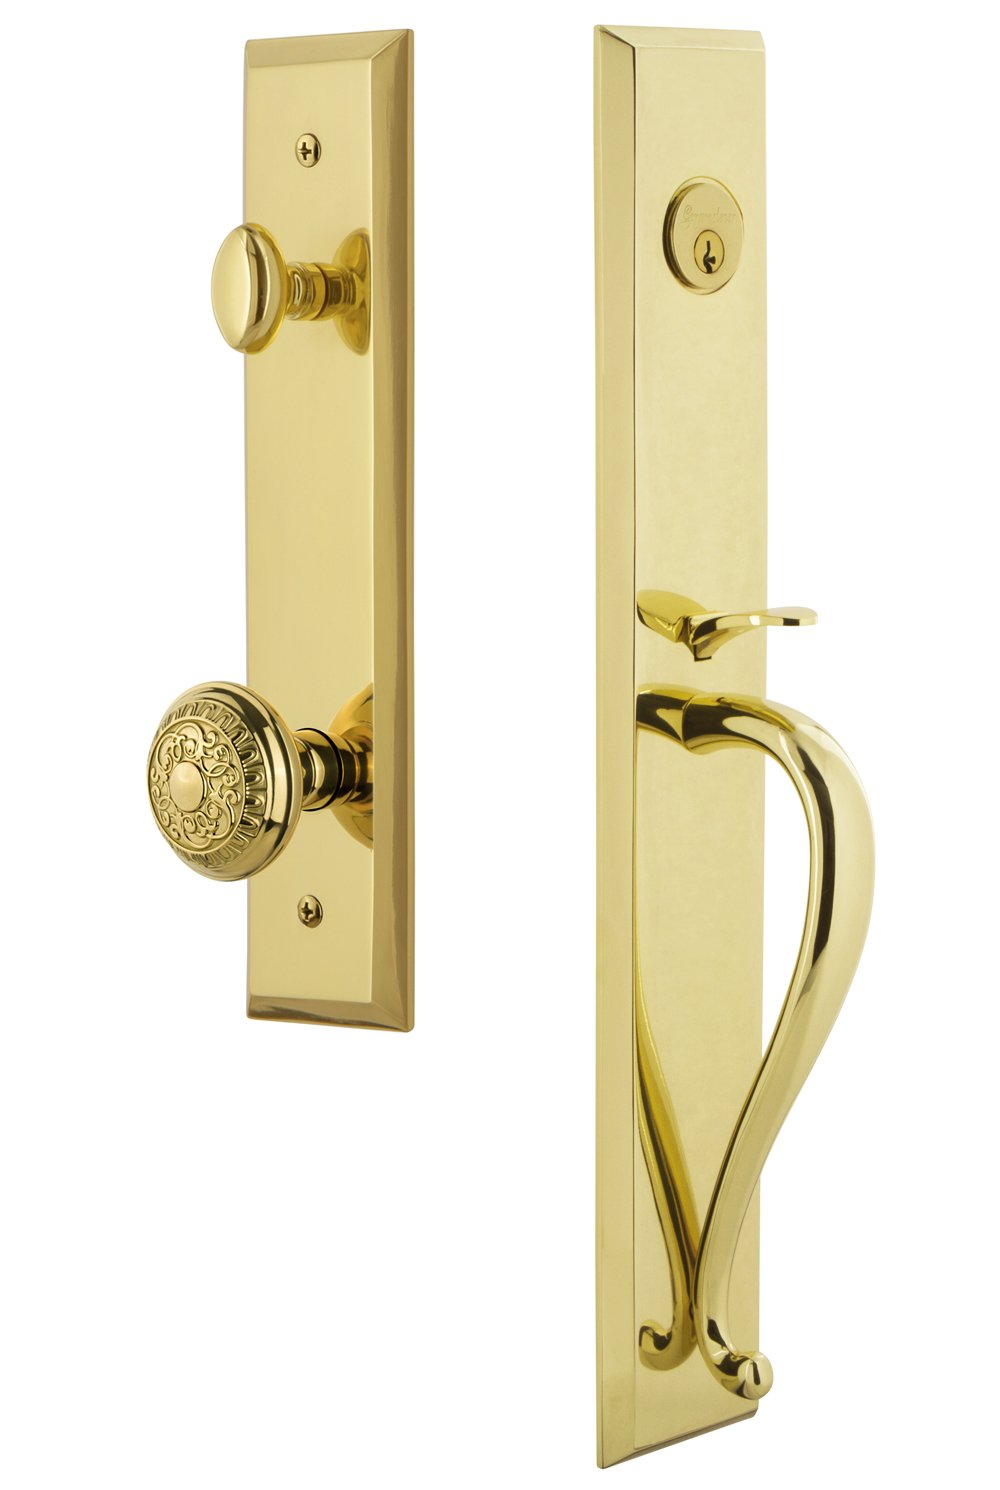 Single Cylinder Lock Grandeur 846608 Hardware Fifth Avenue One-Piece Handleset with S Grip and Windsor Knob in Antique Pewter Backset Size-2.75